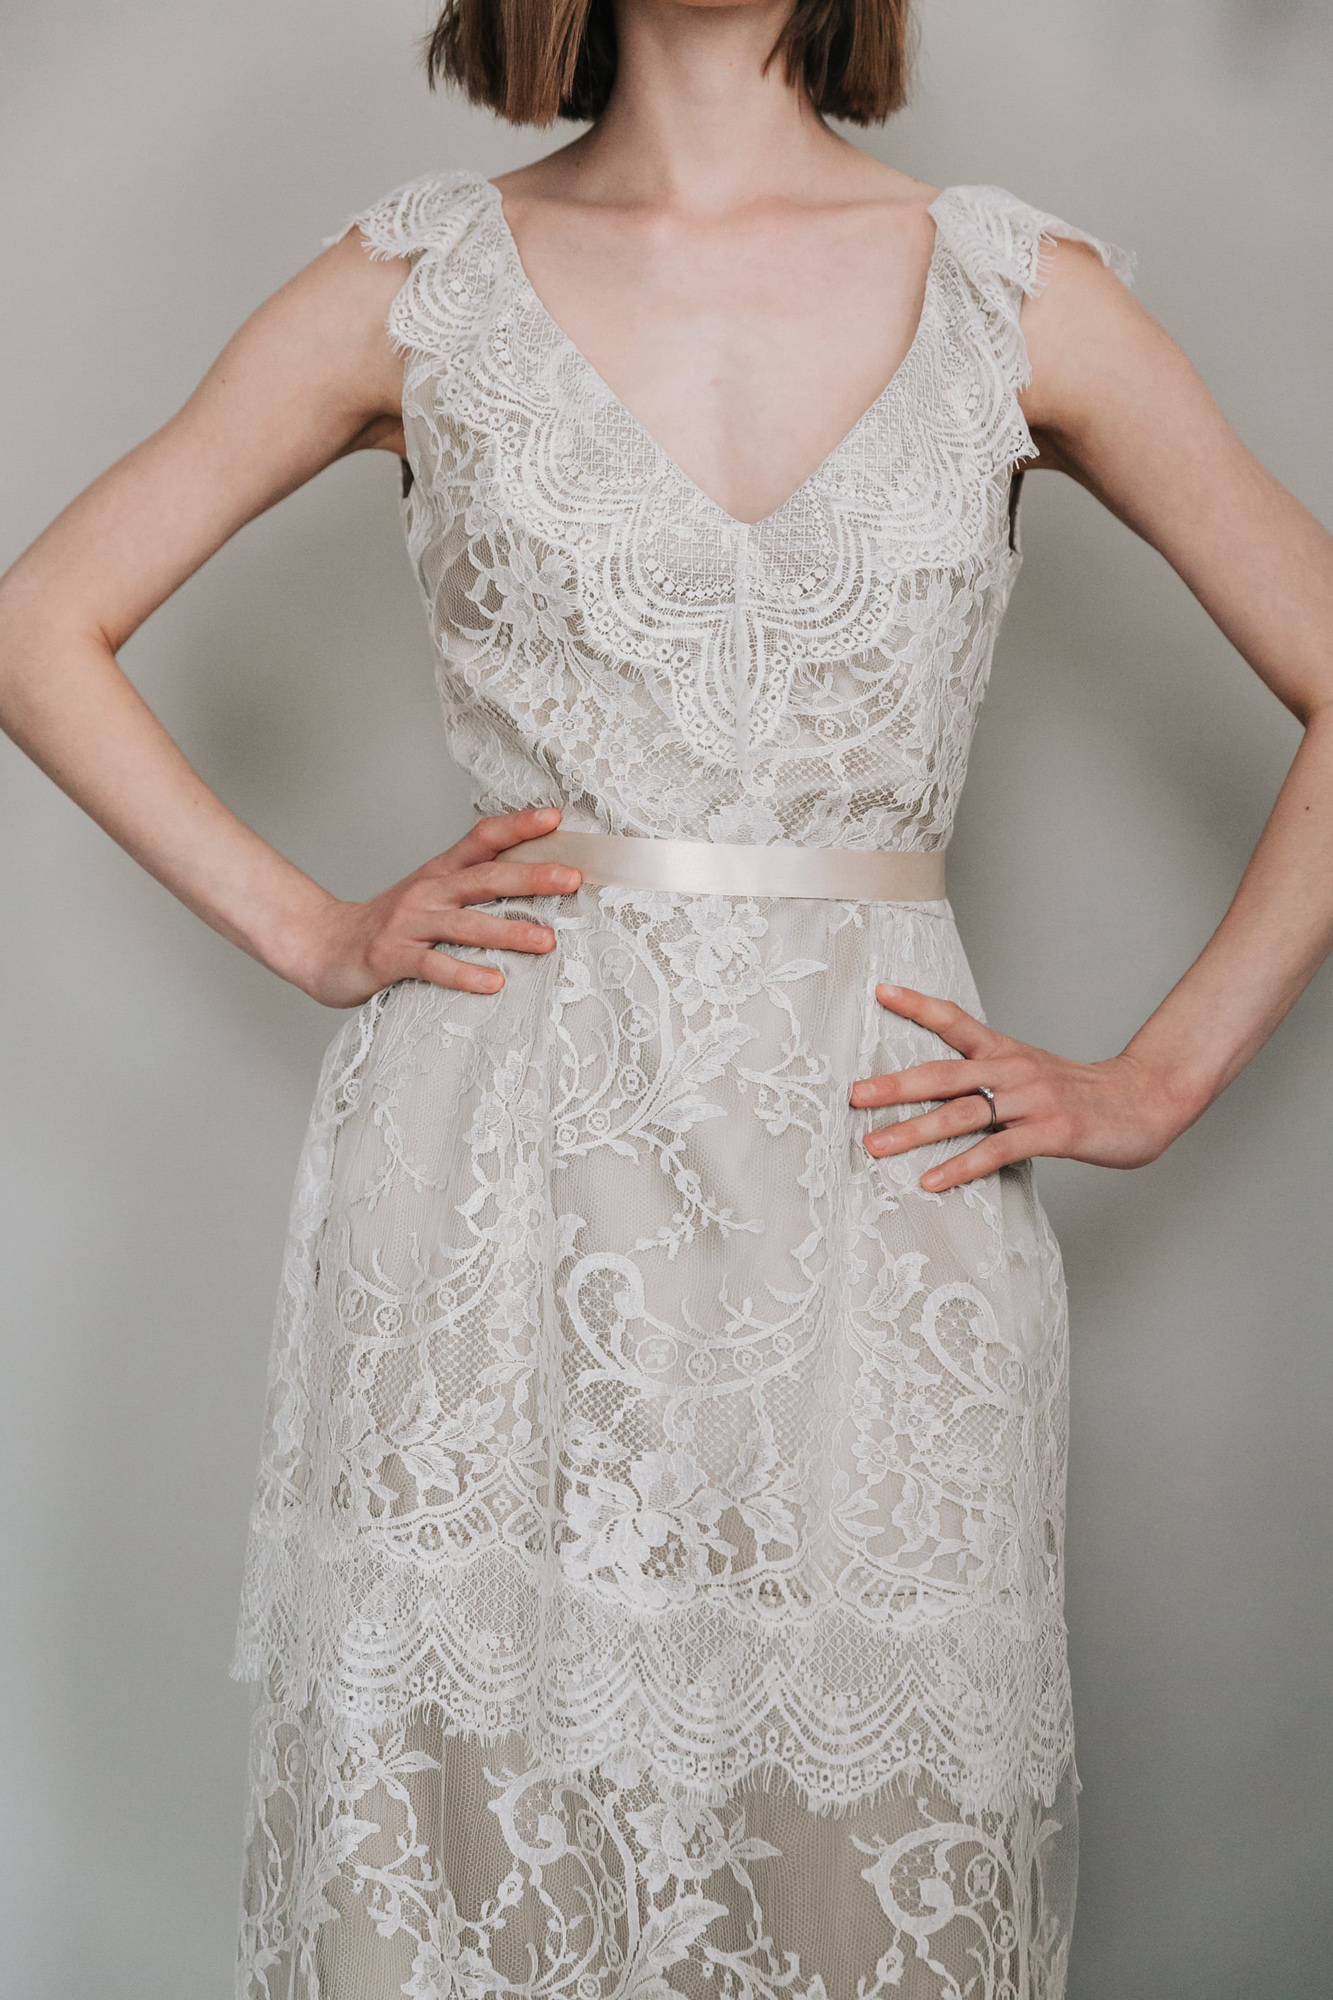 Kate-Beaumont-Sheffield-Wild-Lupin-Bohemian-Lace-Wedding-Gown-Tiered-Skirt-1.jpg